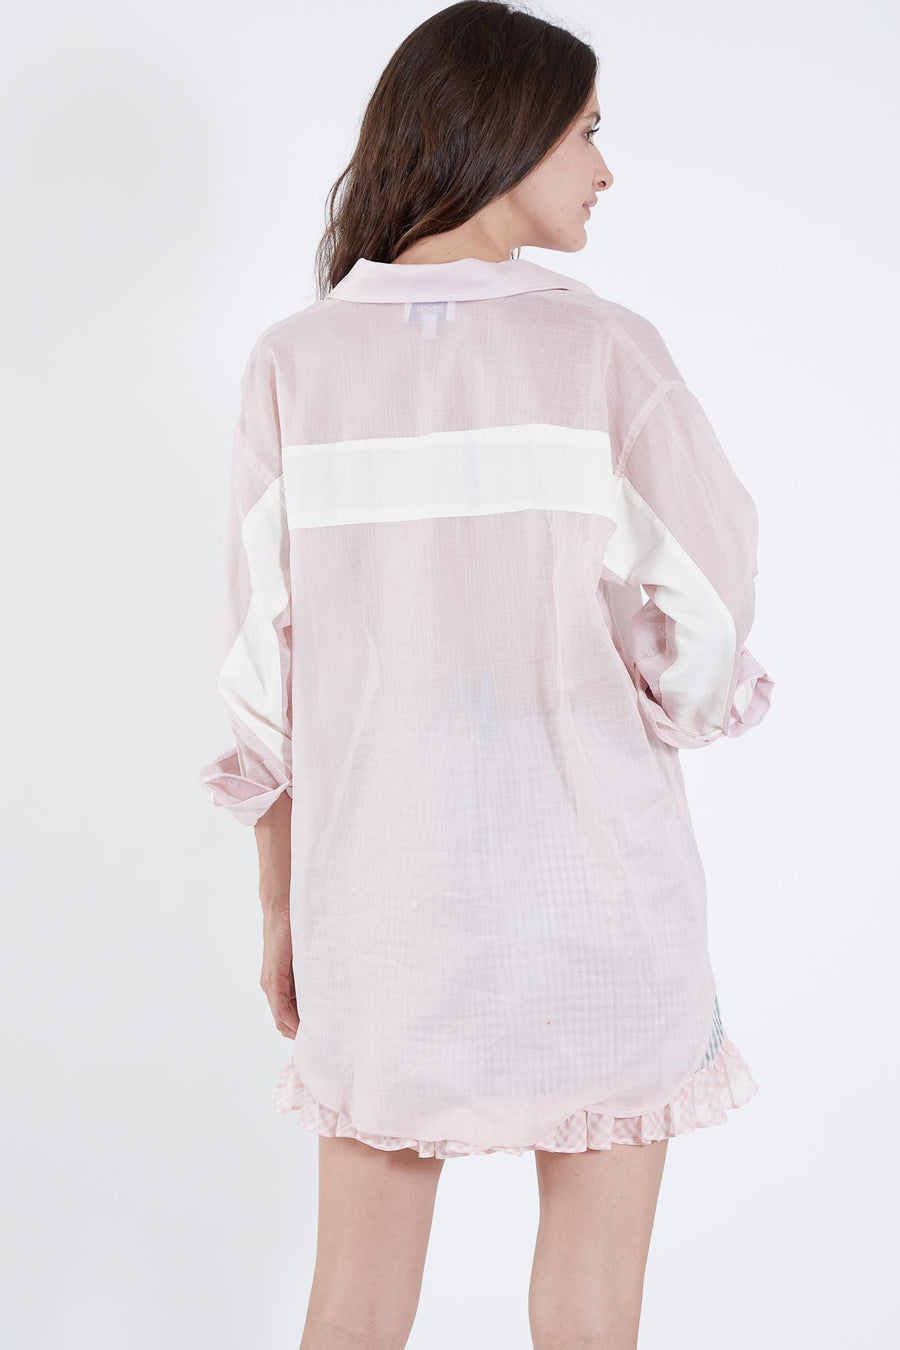 BRET TOP LIGHT PINK